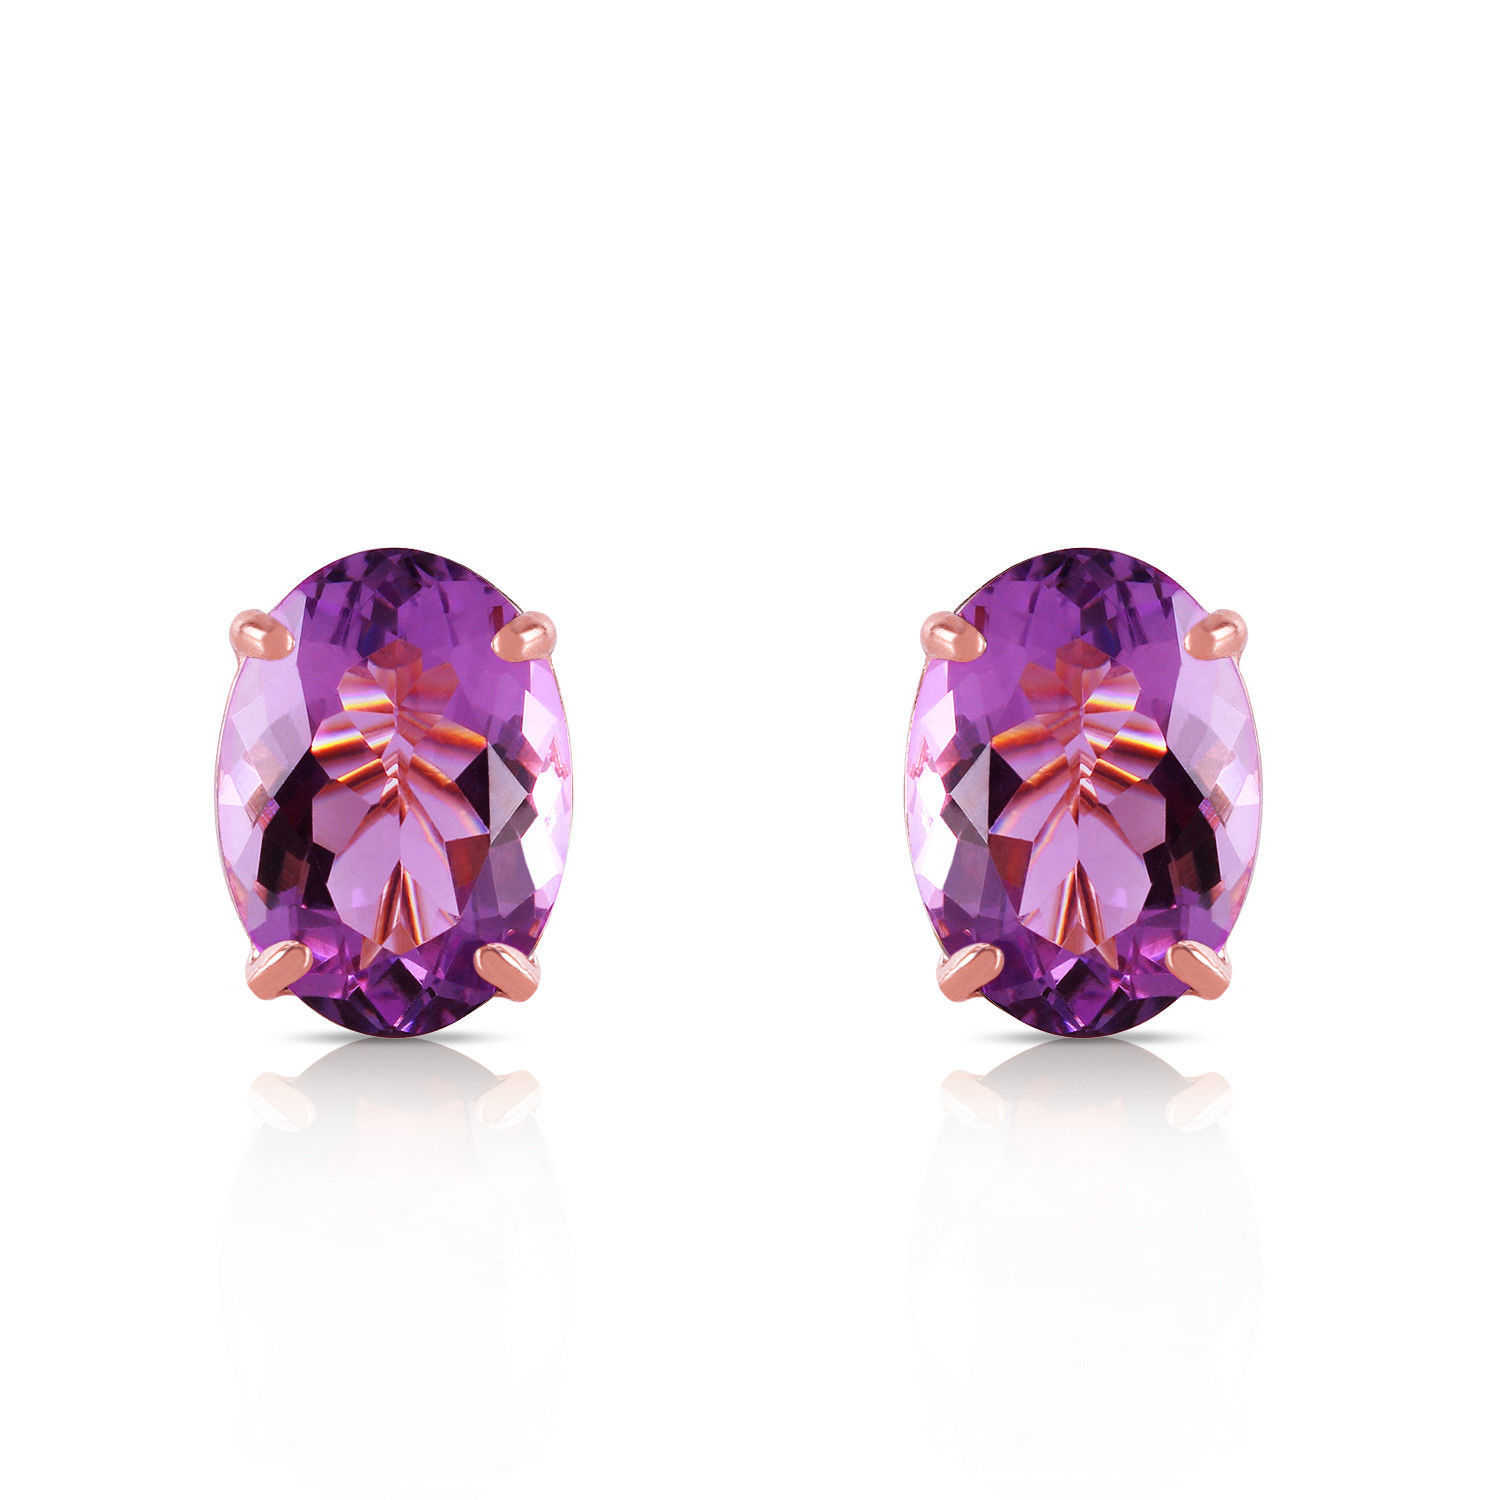 Primary image for 1.8 Carat 14K Solid Rose Gold Panache Amethyst Stud Earrings